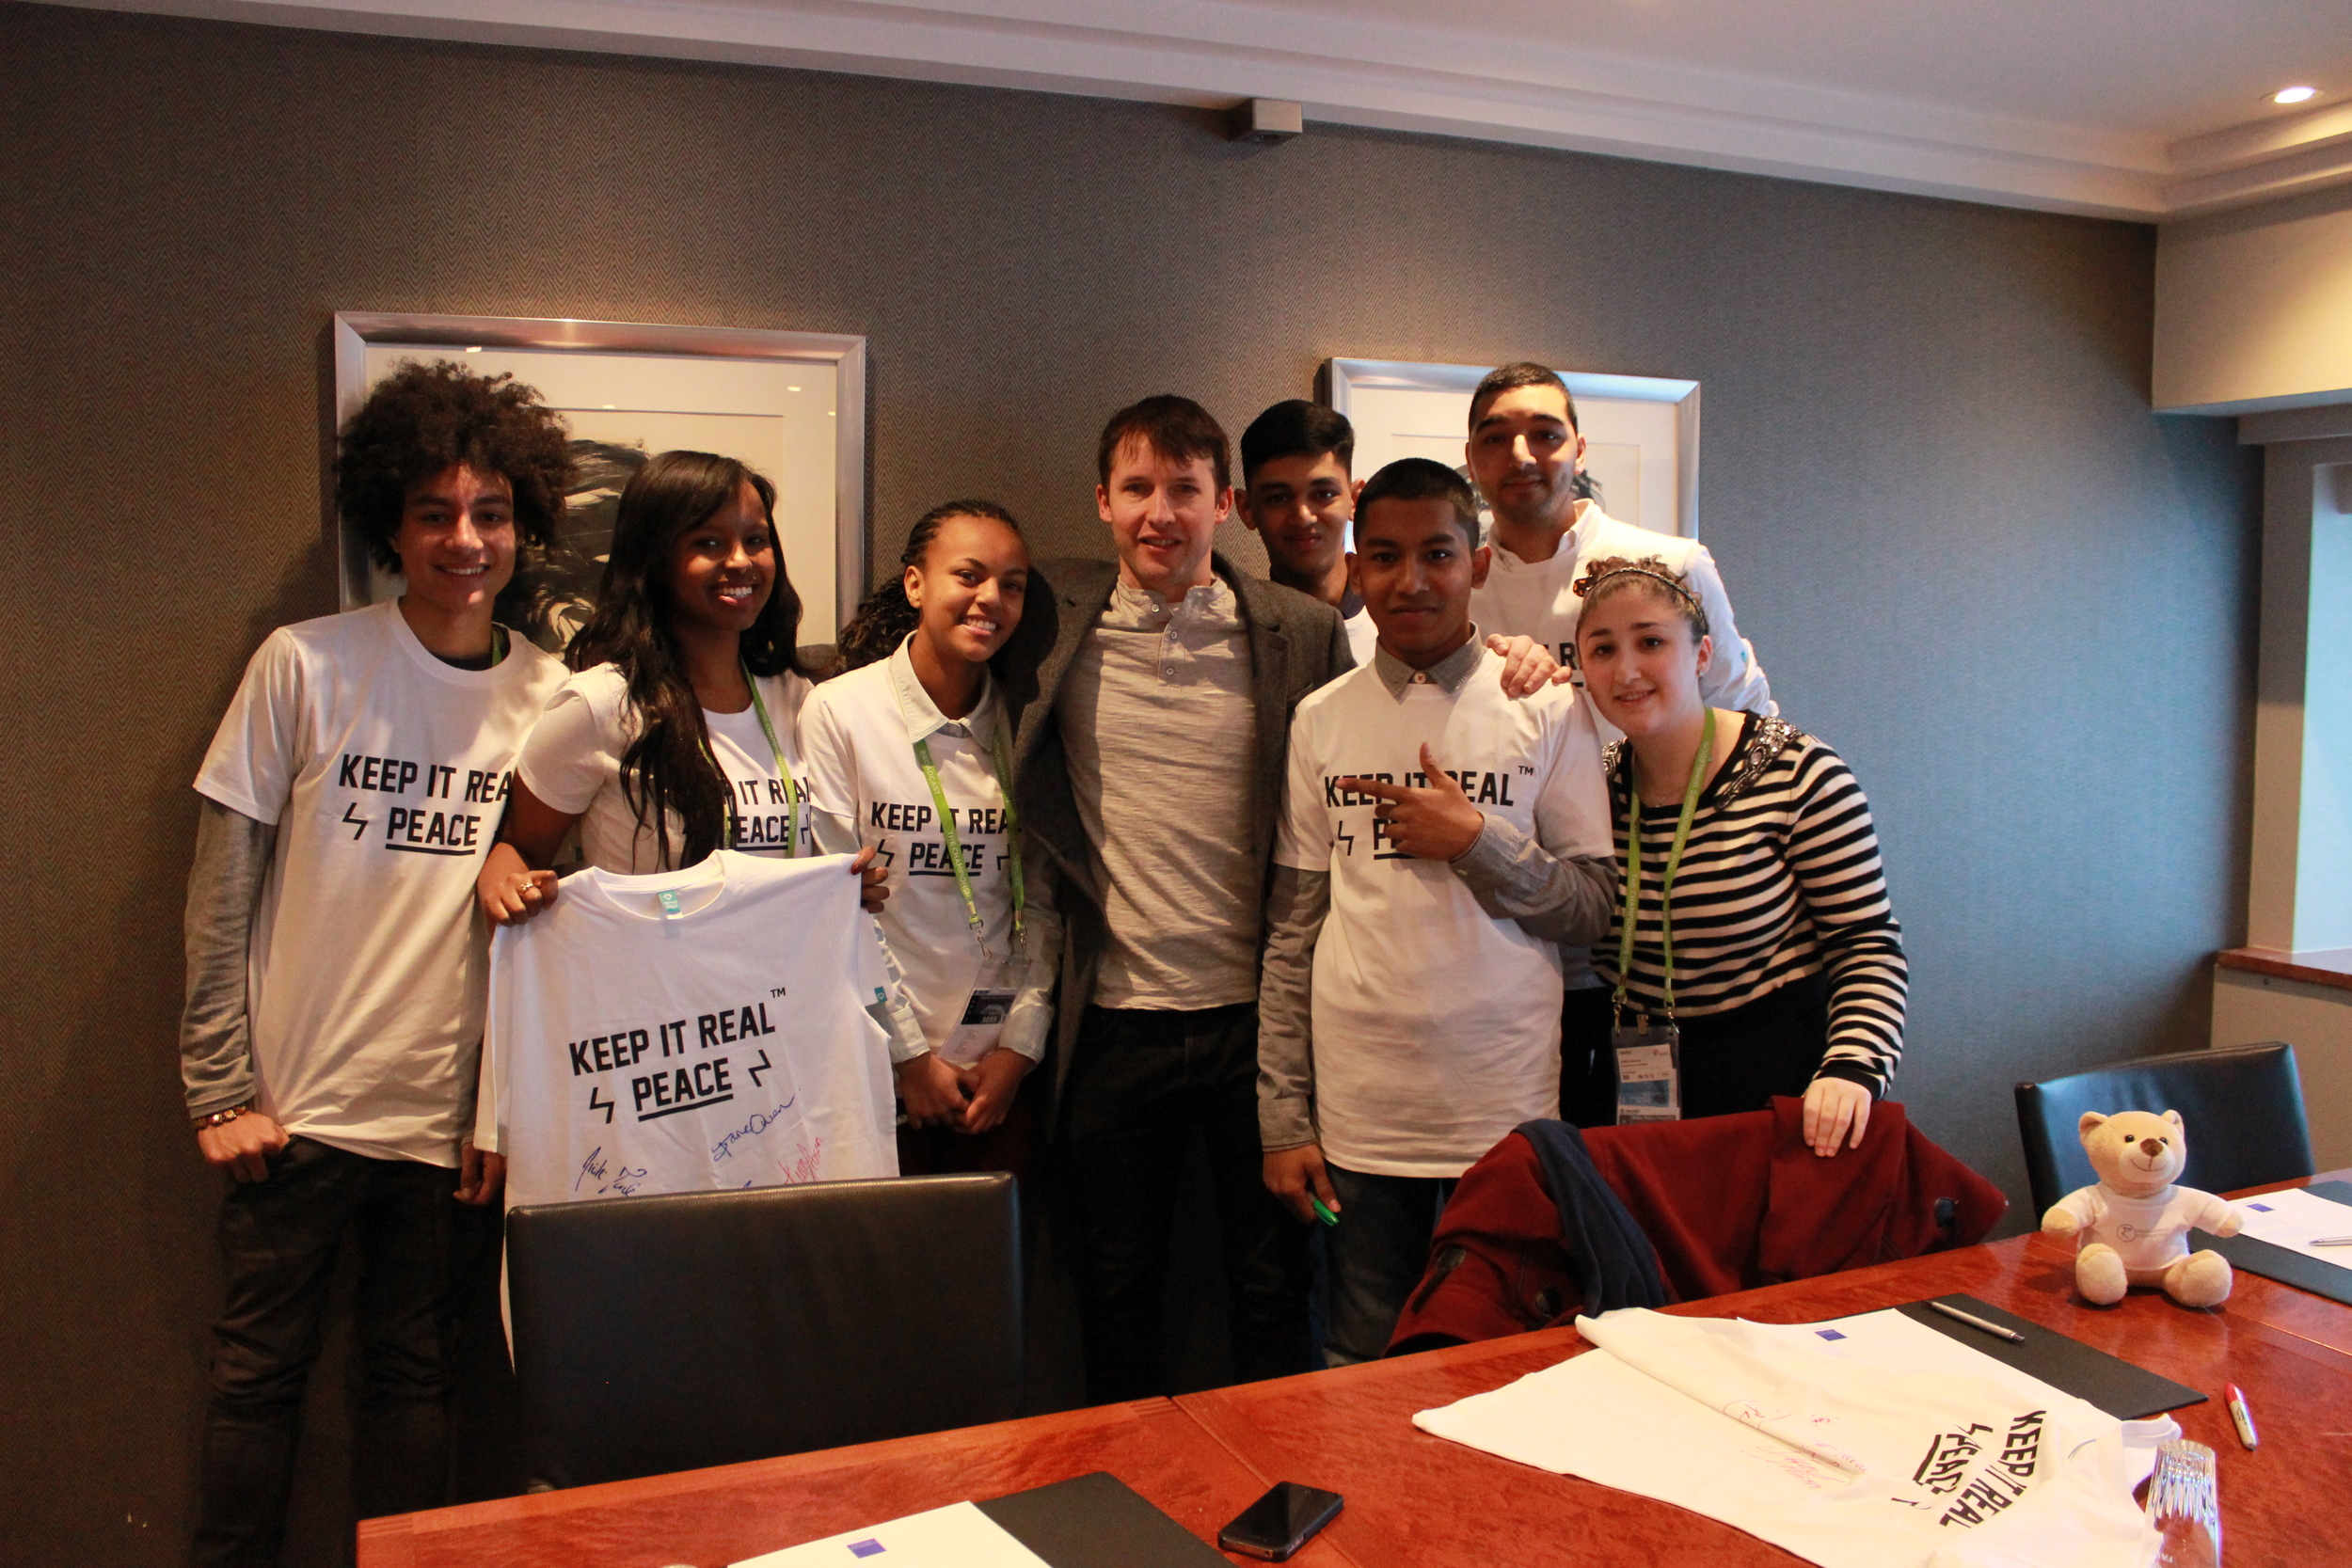 James Blunt music artist & Nobel Performer meets with Keep it Real Young Leaders group in Oslo